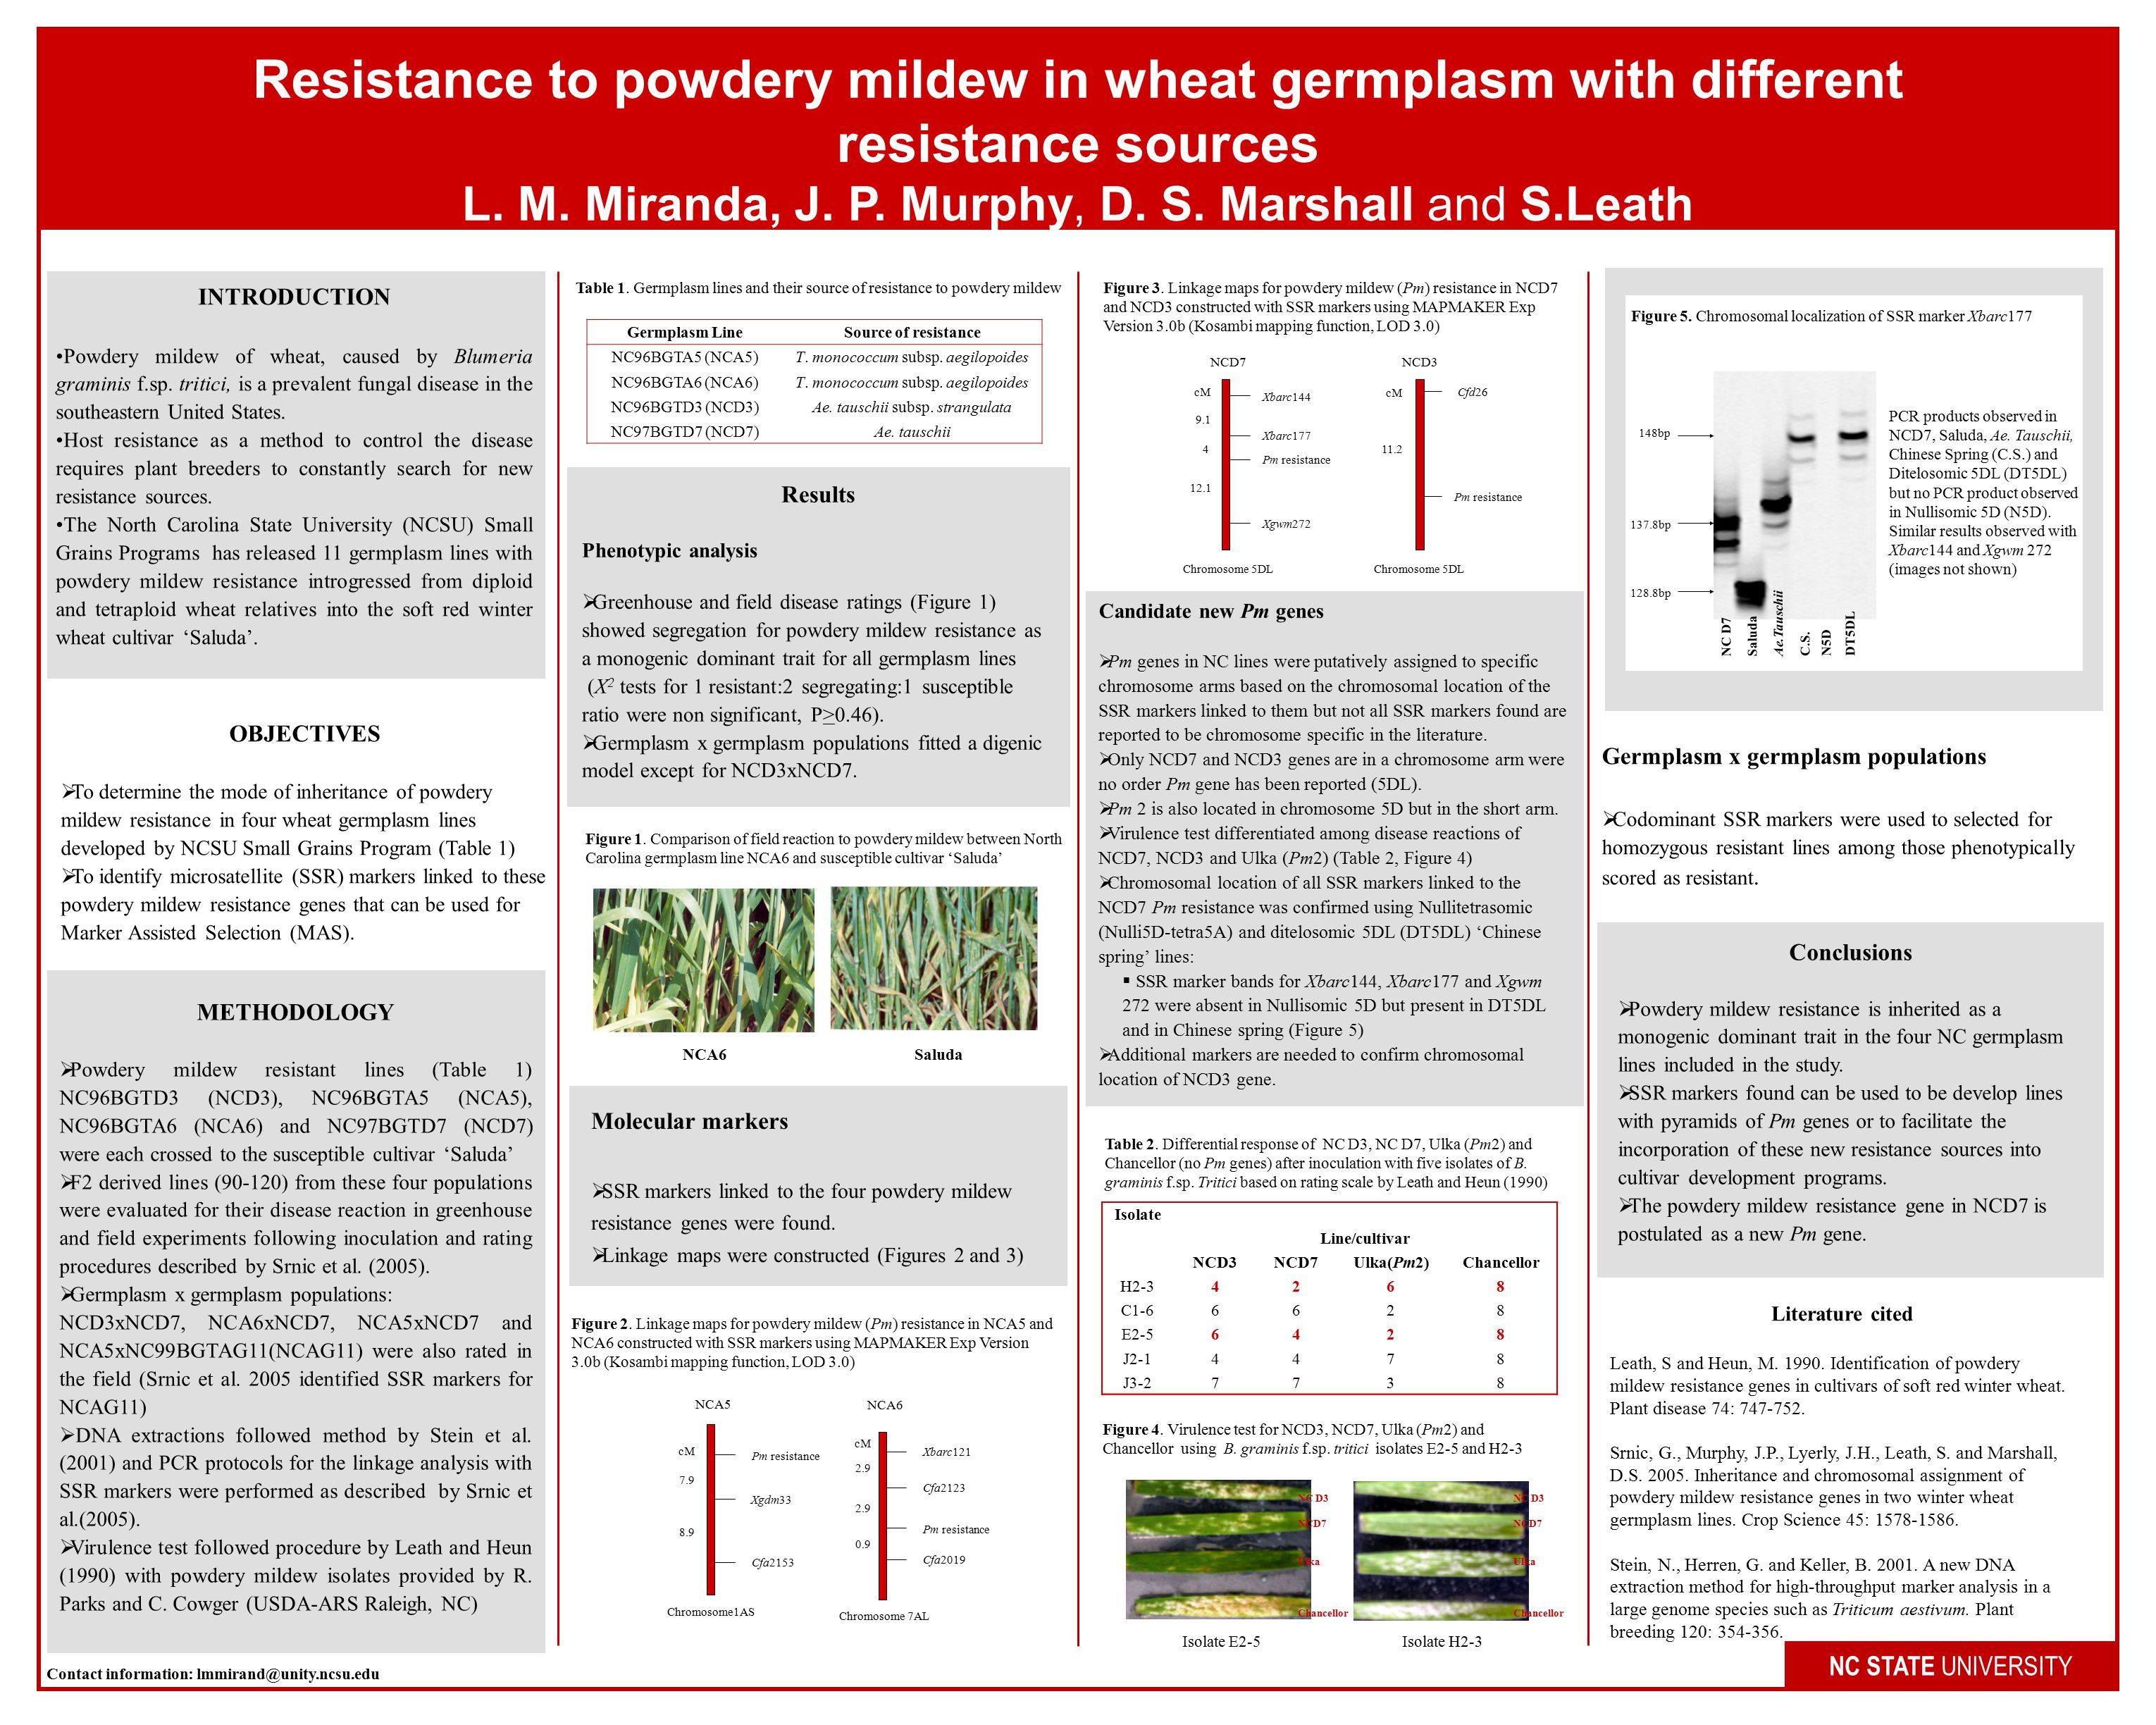 Resistance to powdery mildew in wheat germplasm with different resistance sources L.